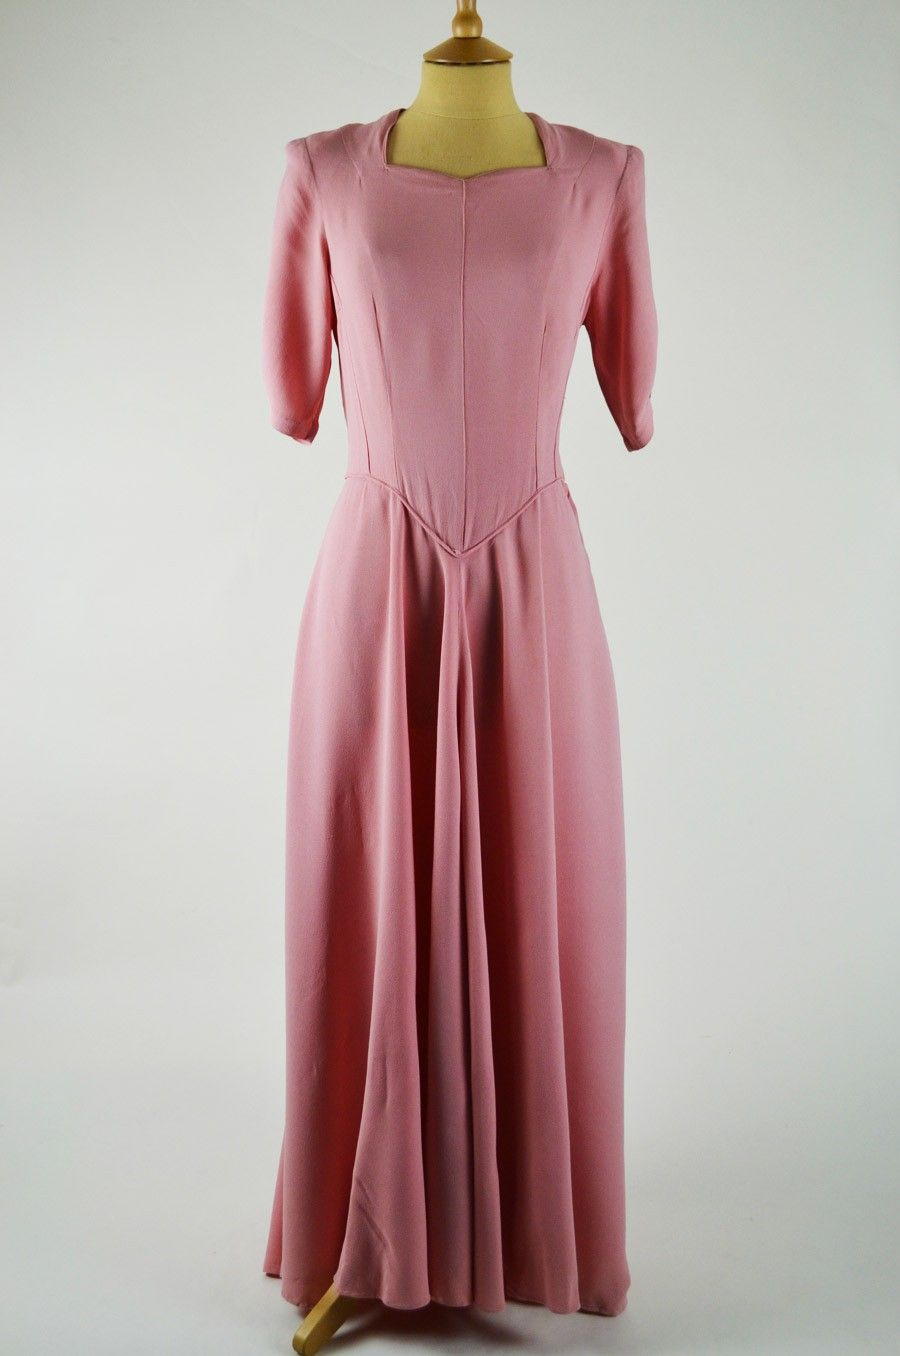 This elegant vintage 1940s dress is made of pale pink moss crepe ...